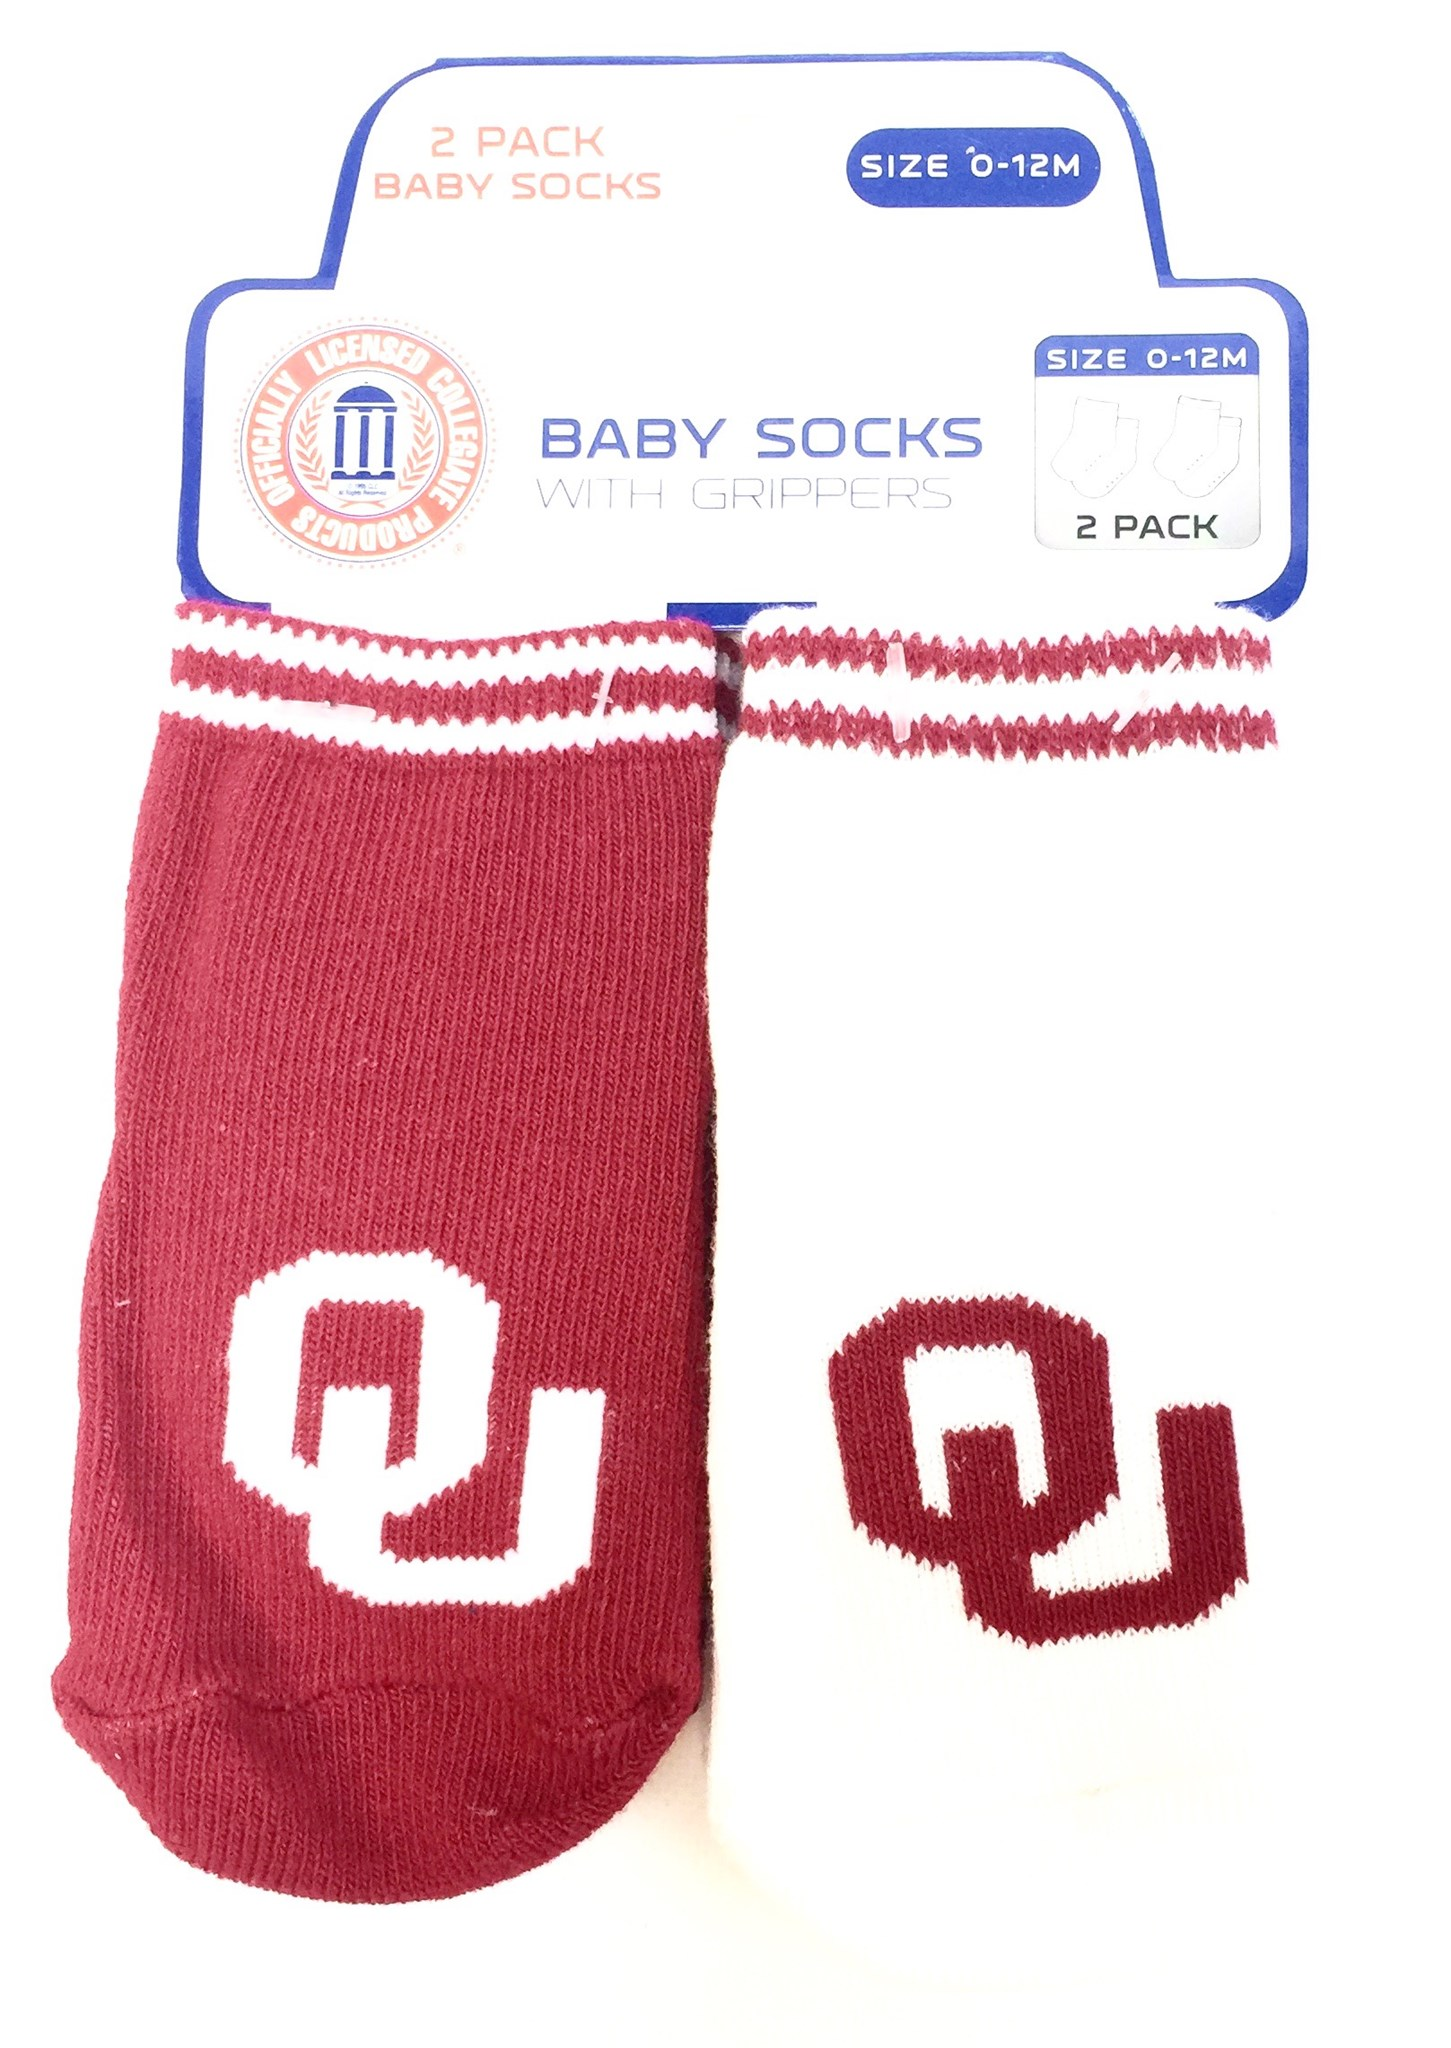 Carded 2 Pk Baby Socks w/Grippers - Oklahoma State